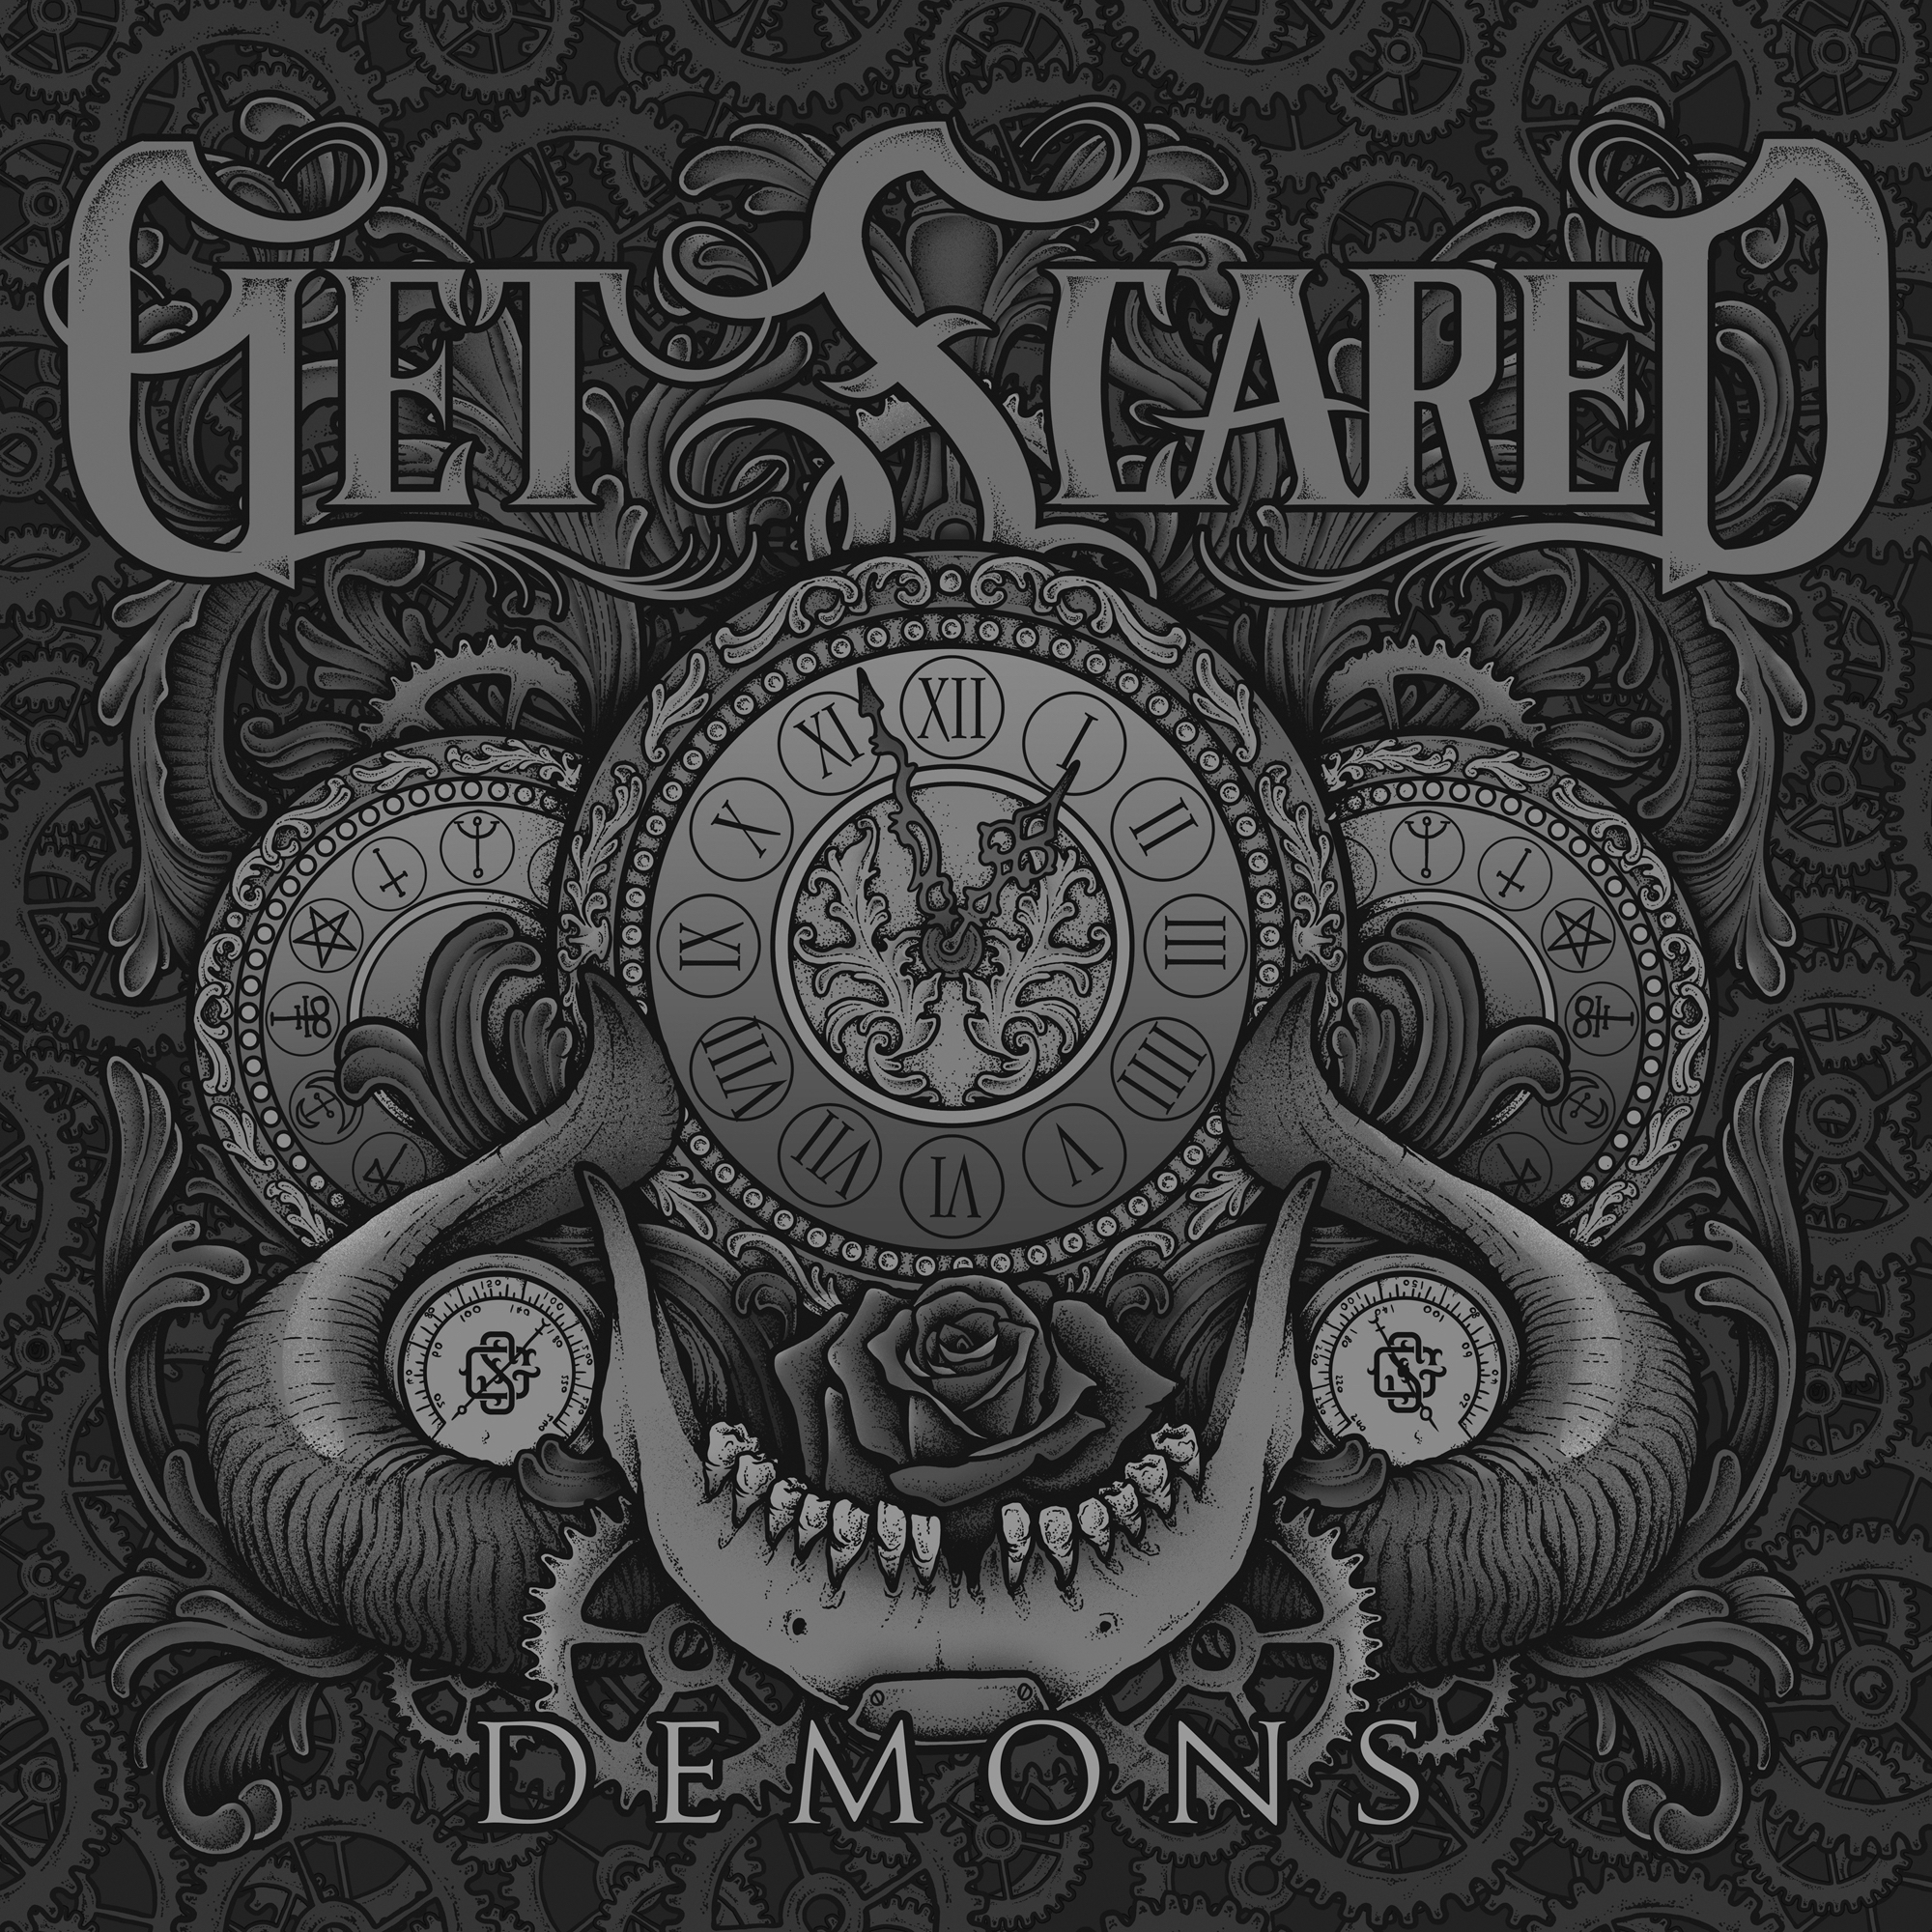 Get Scared - R.I.P. [Single] (2015)